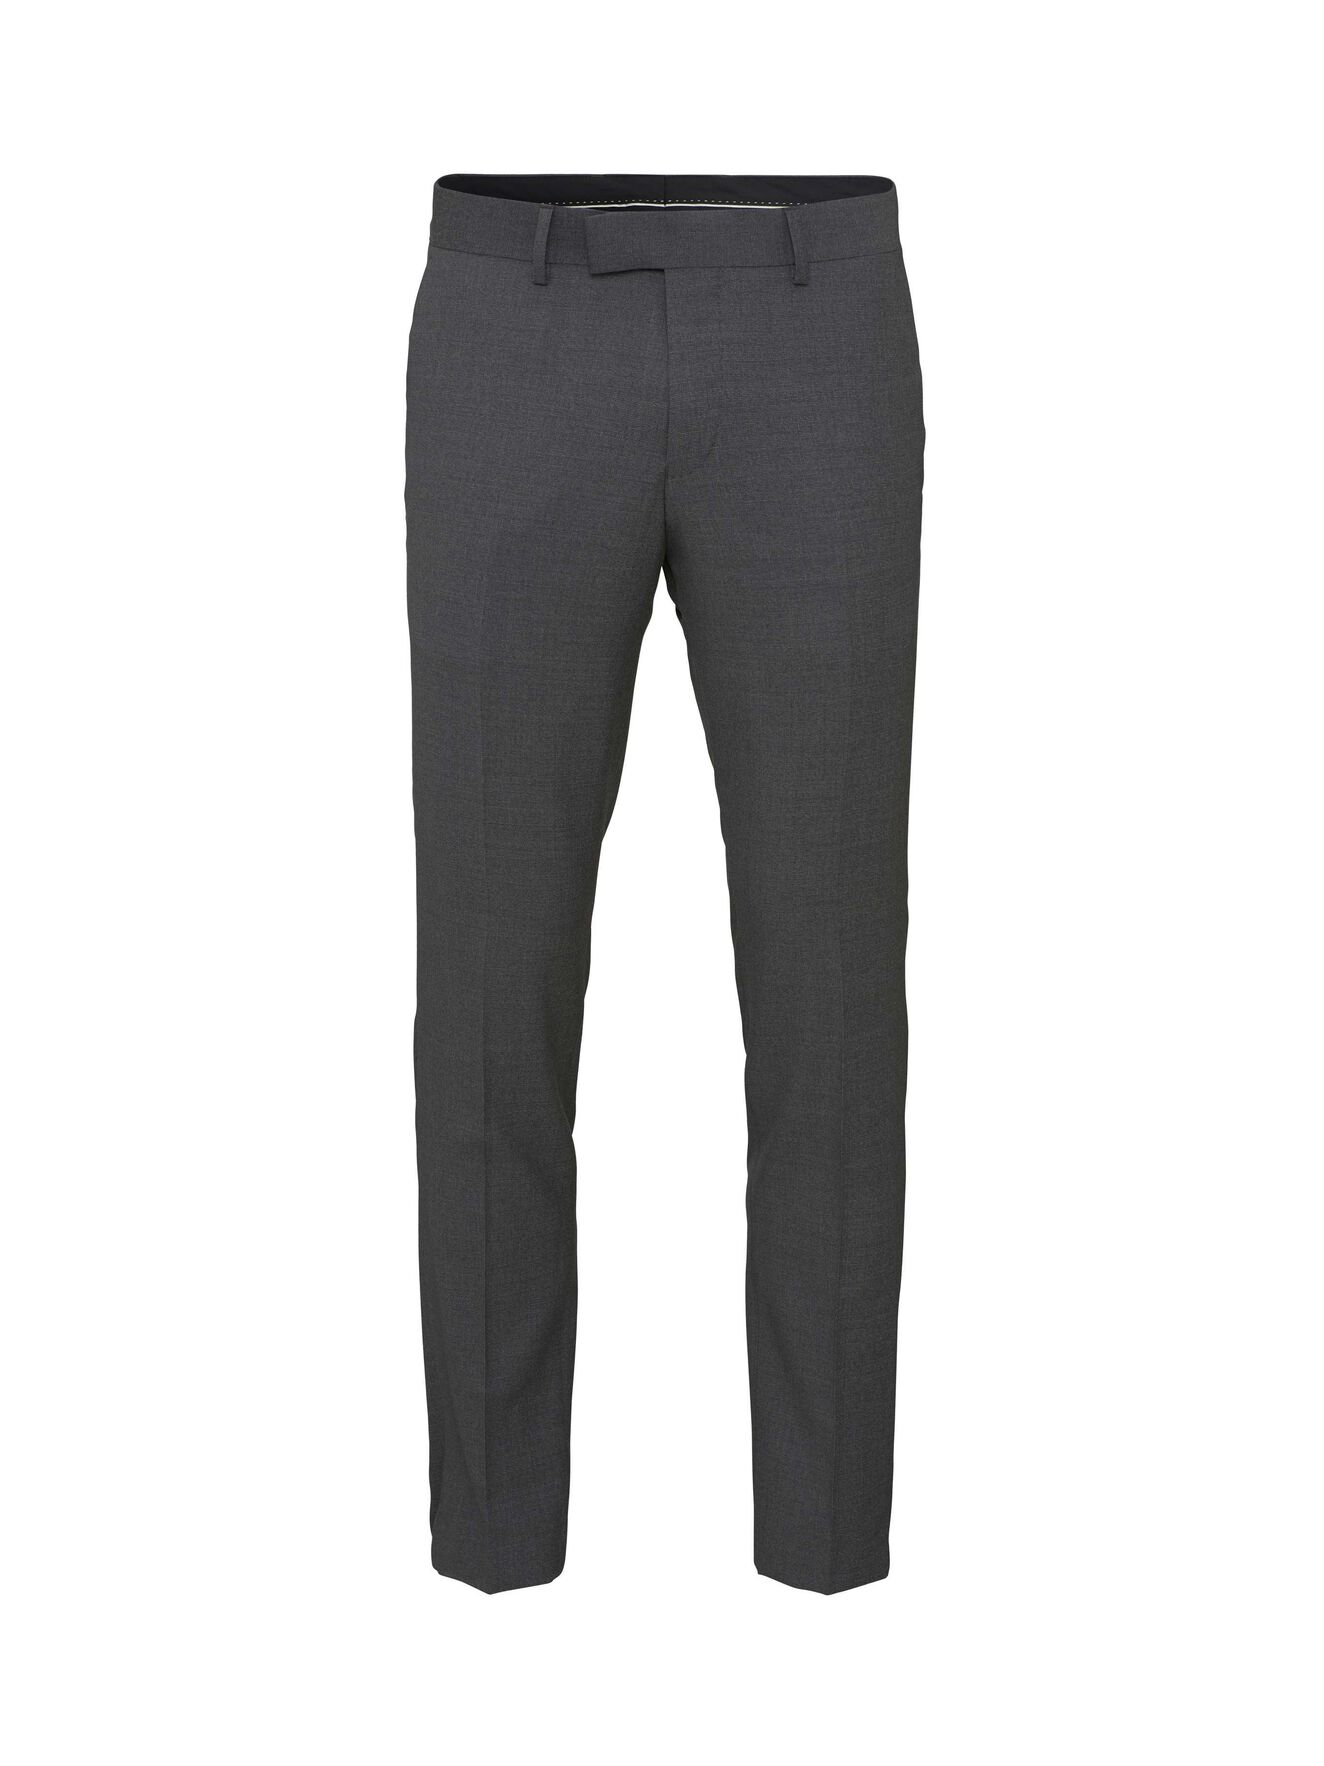 Gordon Trousers in Iron Gate from Tiger of Sweden